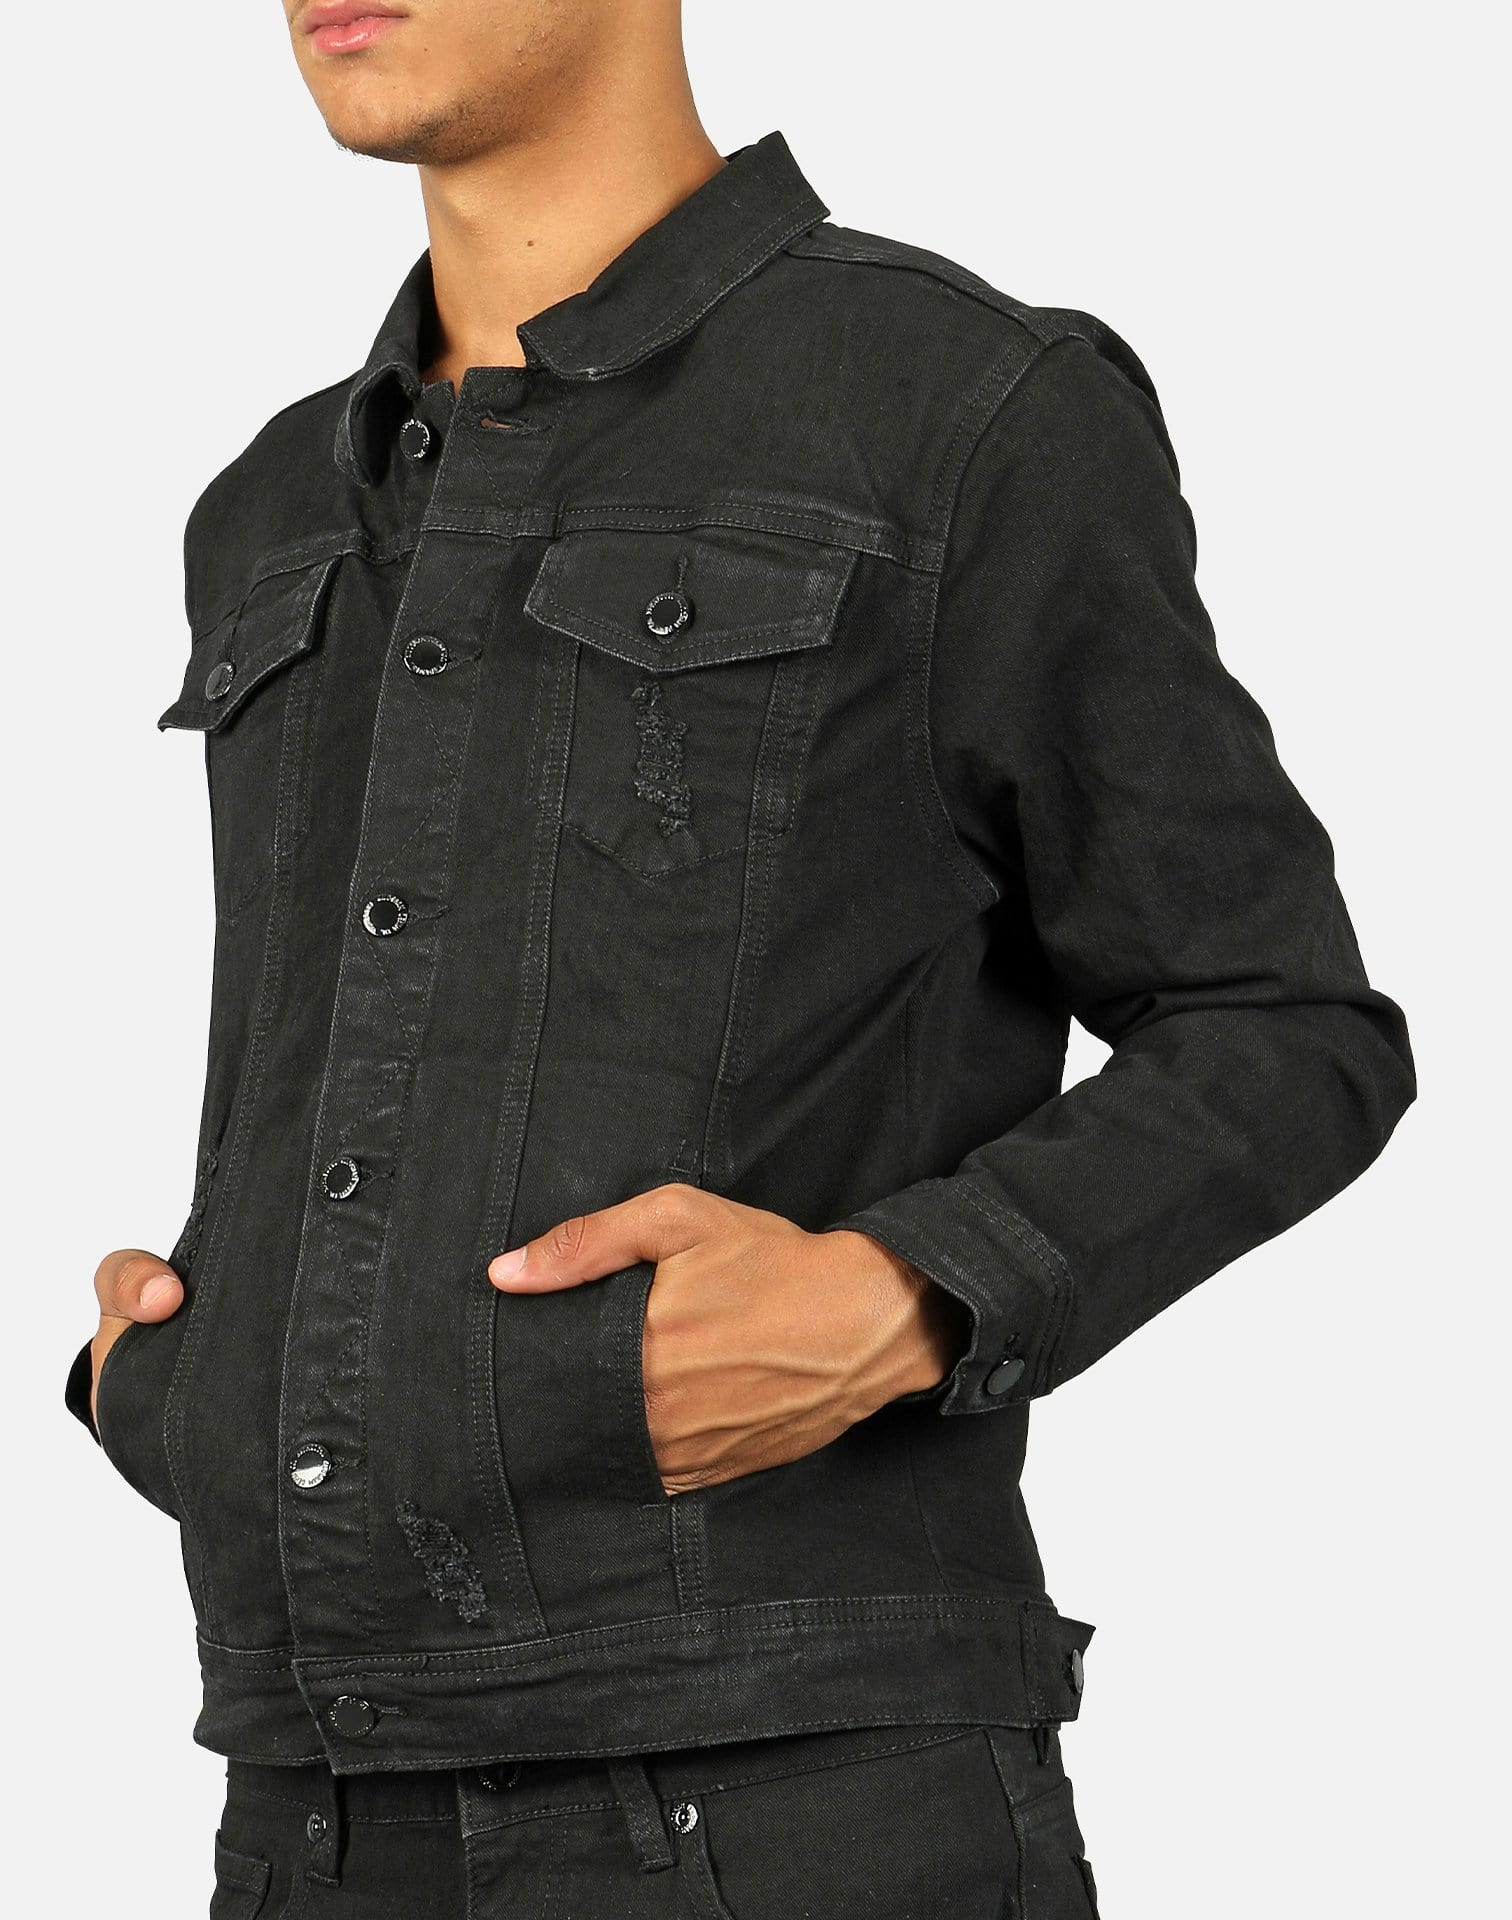 Kilogram Men's Distressed Moto Repair Jean Jacket